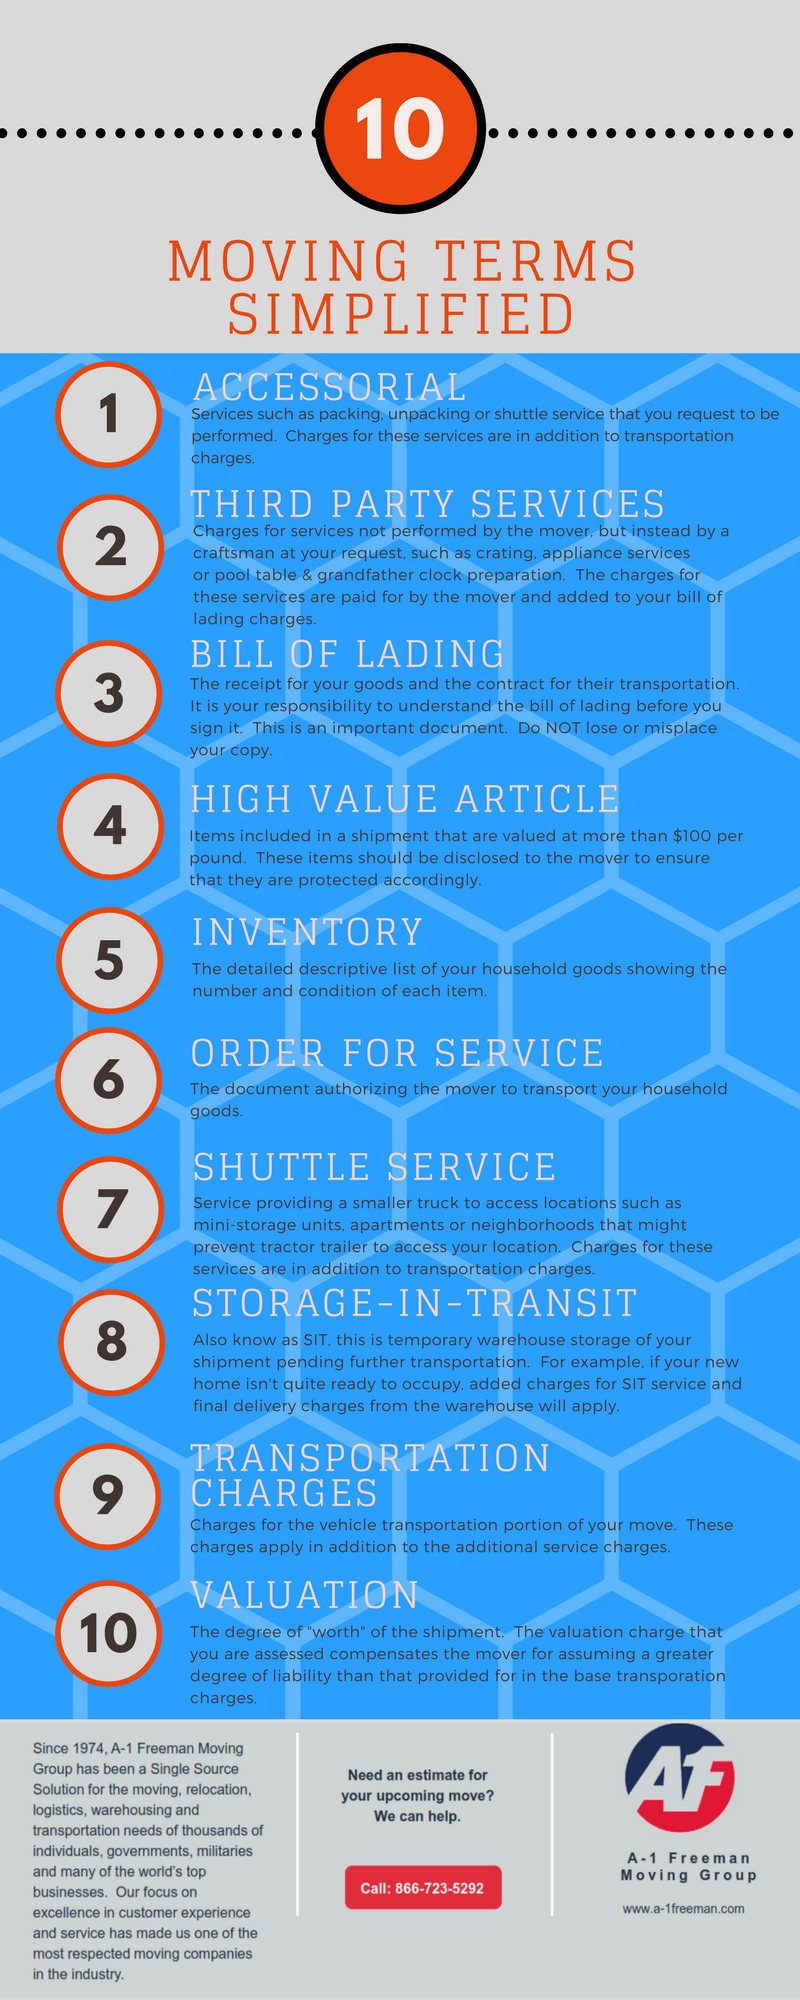 A-1 Freeman Moving Group Atlanta Moving Terms Infographic